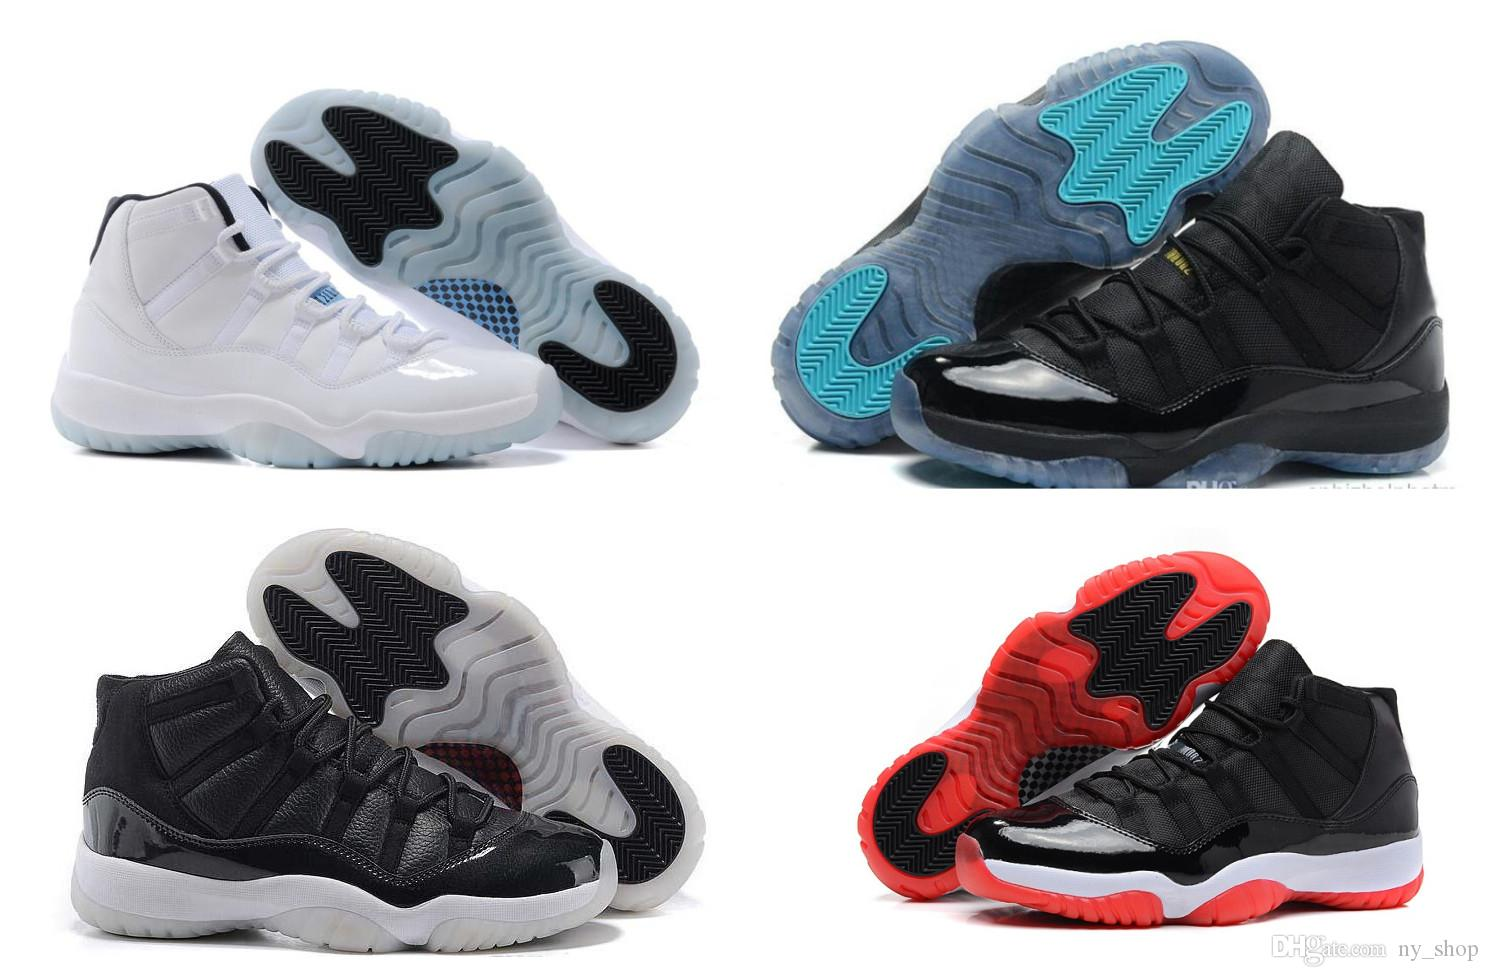 quality design 6dd8a 391d3 New Stylish 11 11s Gamma Blue Bred Concord Space Jam Infrared Georgetown  Varsity Red Gym Red 11s Shoes For Men Women With Box